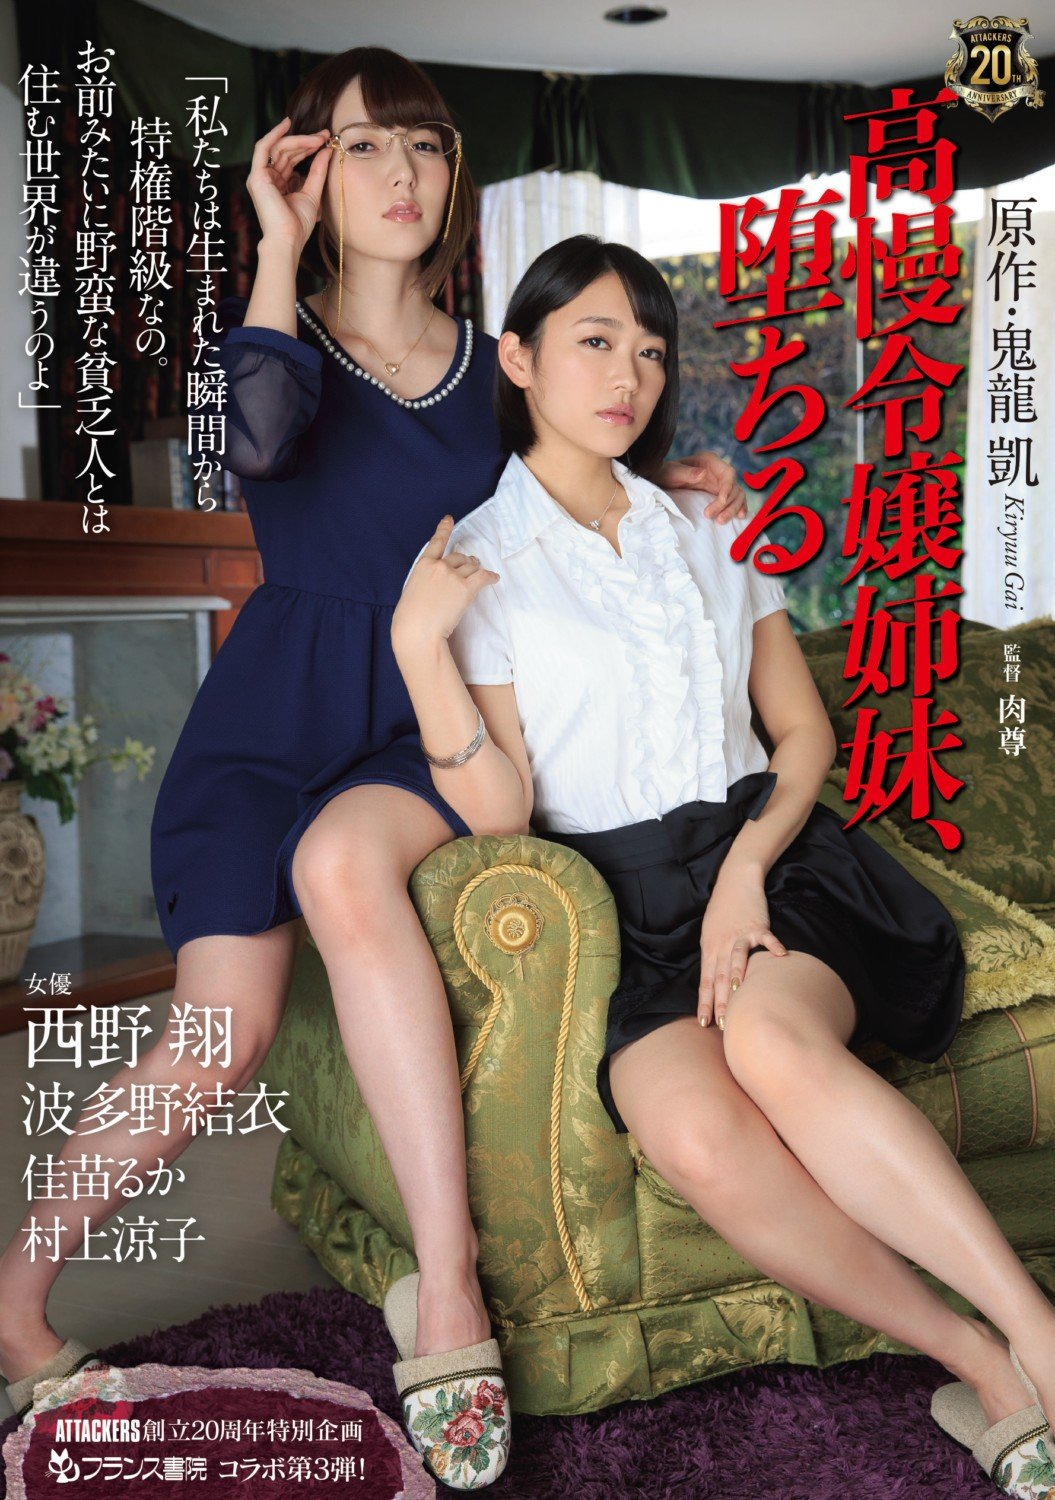 [SSPD-134] (English sub) Arrogant Young Lady Stepsisters, Defiled